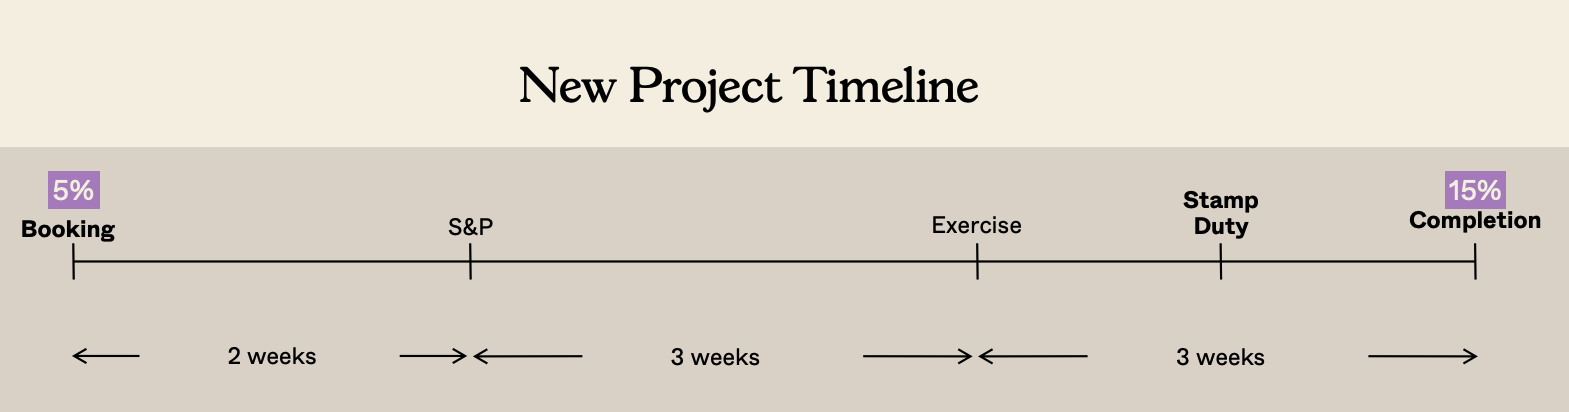 new launch timeline